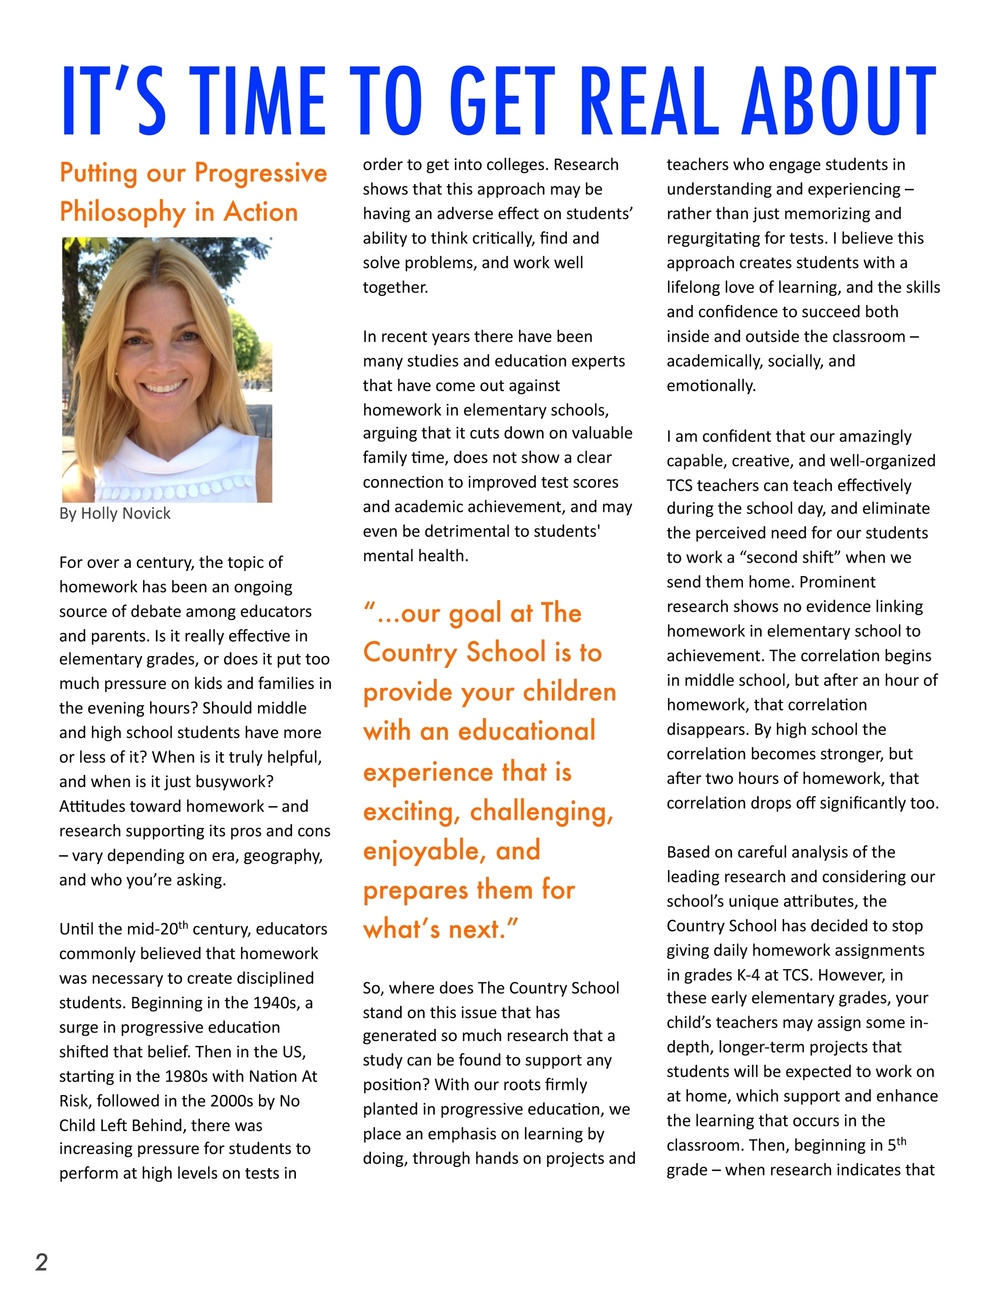 """It's Time to Get Real About Homework"" – Holly Novick's article about our new policy in the TCS Newsletter"